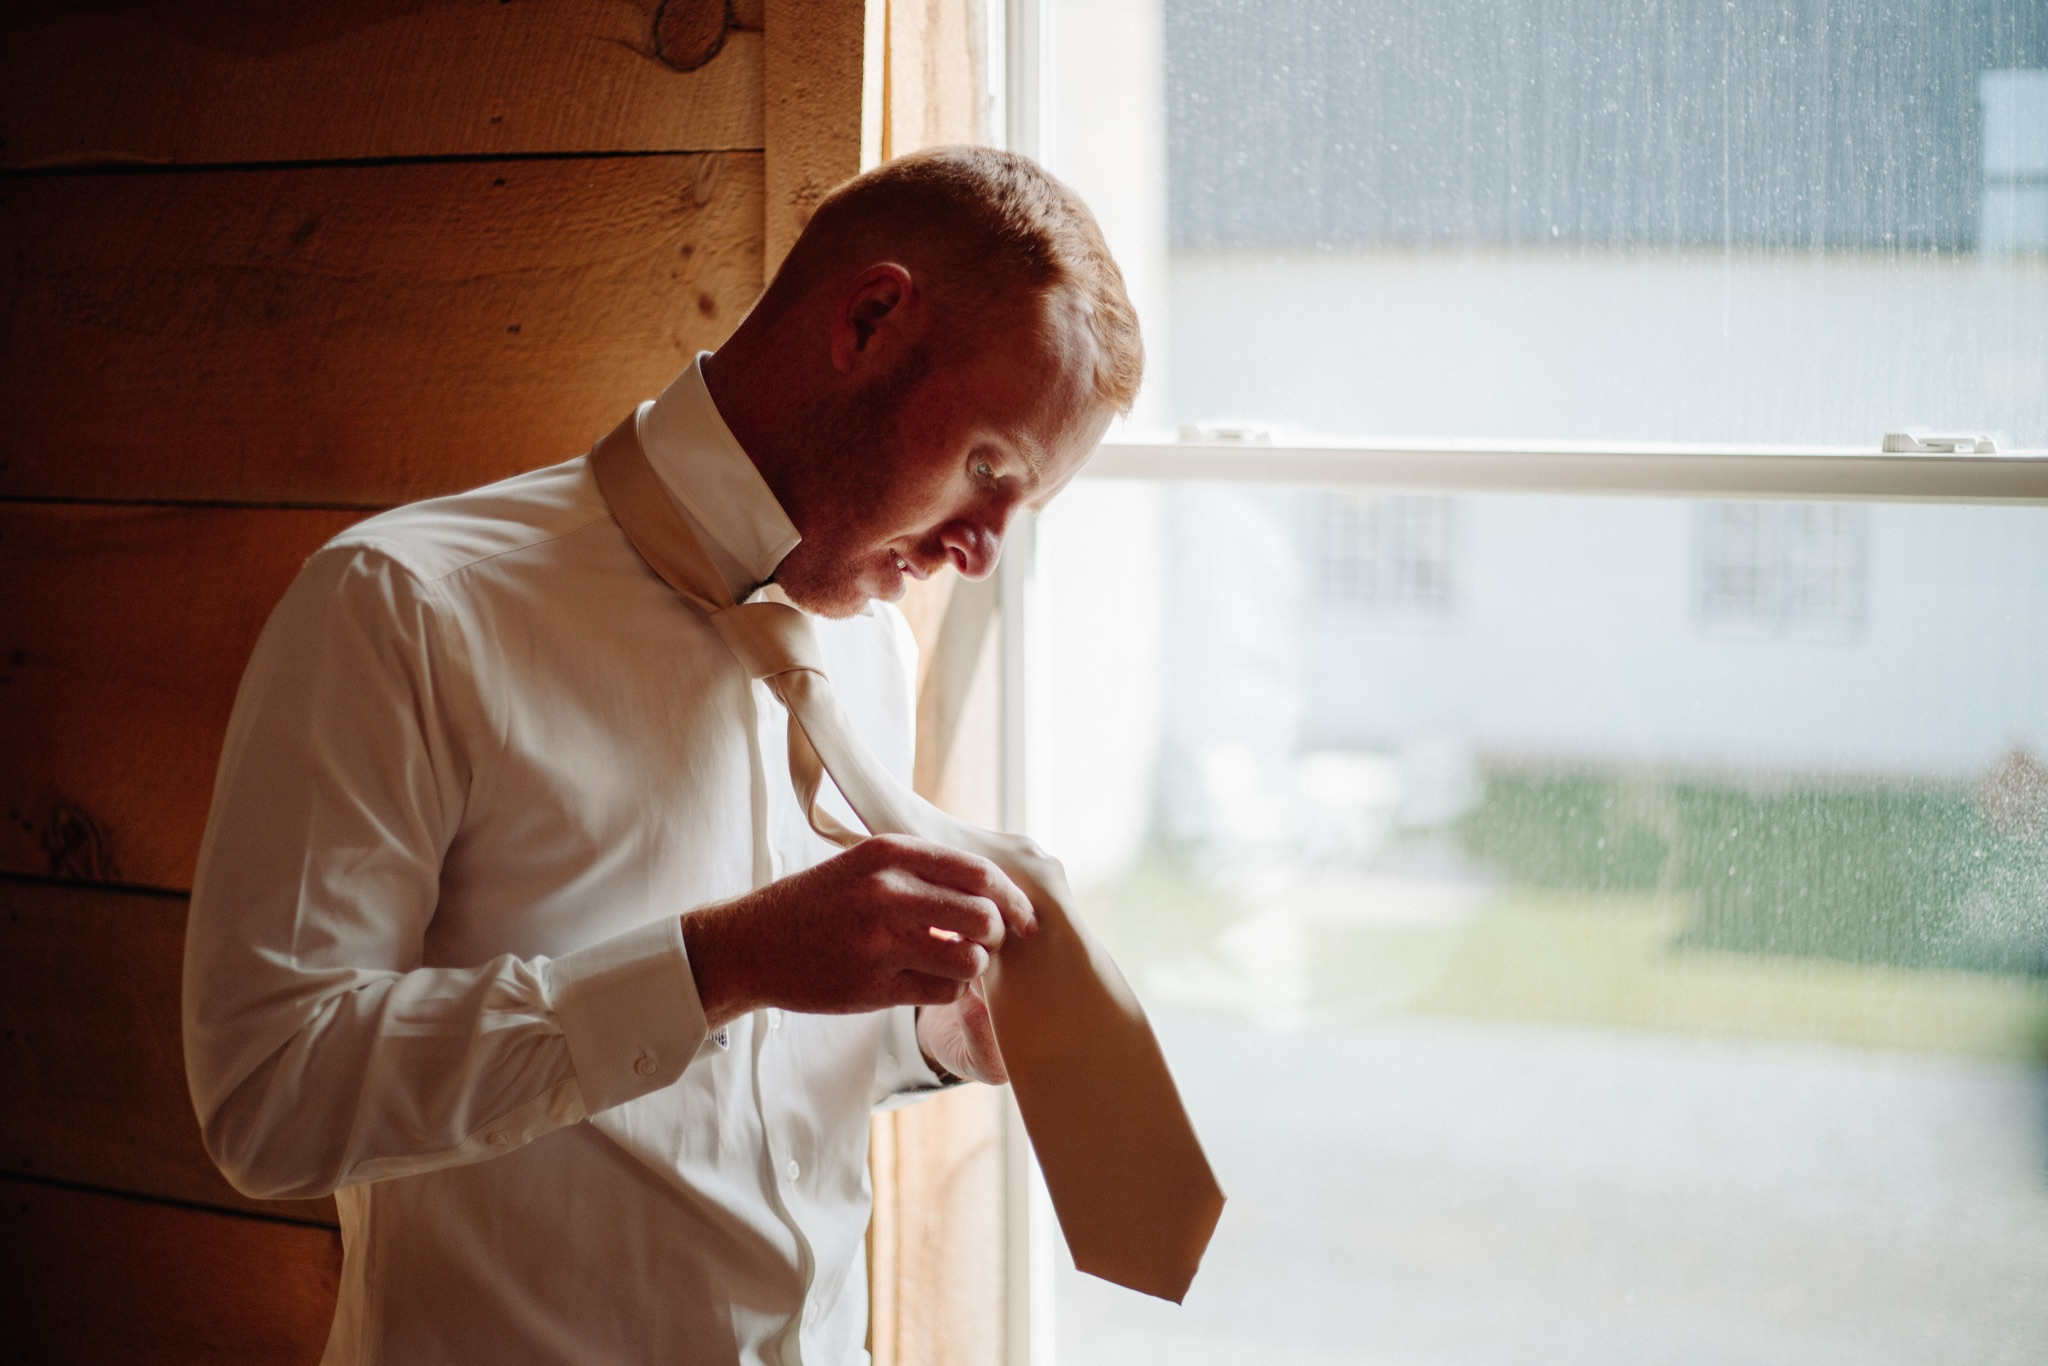 Groom holding his tie and getting ready